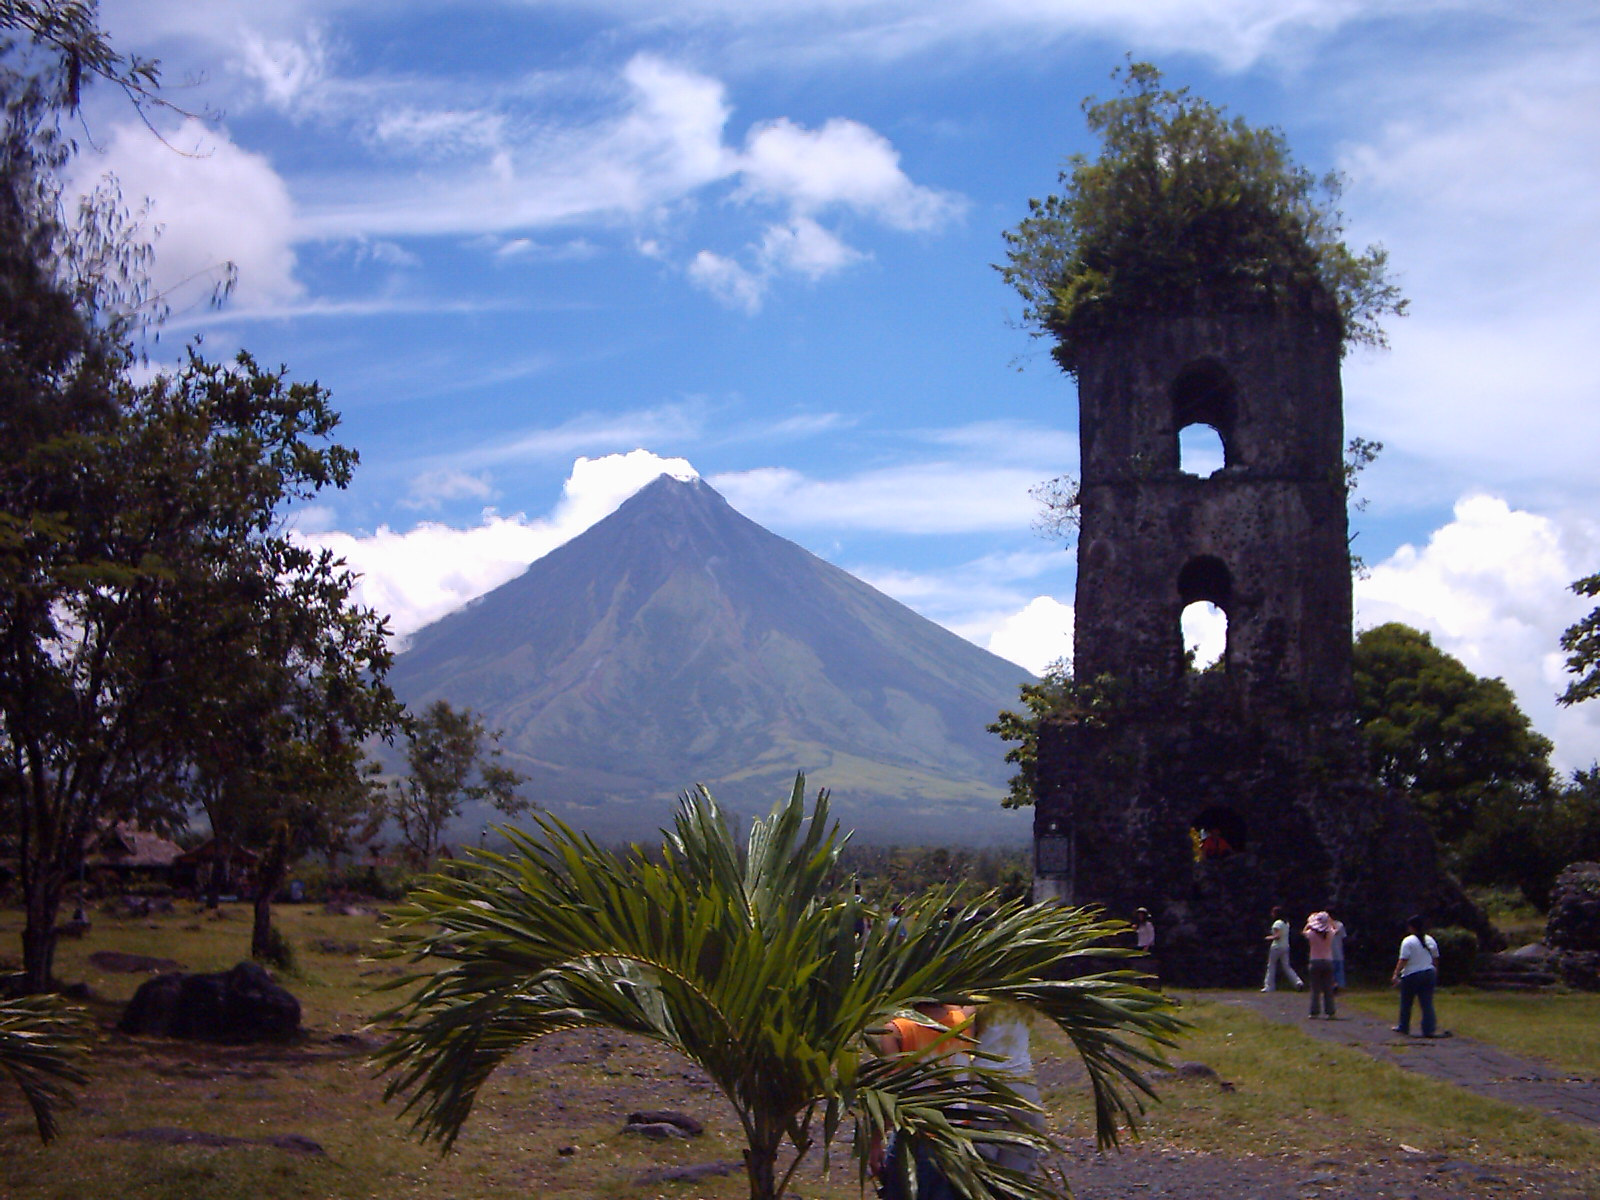 Mayon Volcano In Albay Philippines Beautiful Places Spaces Pinterest Philippines And